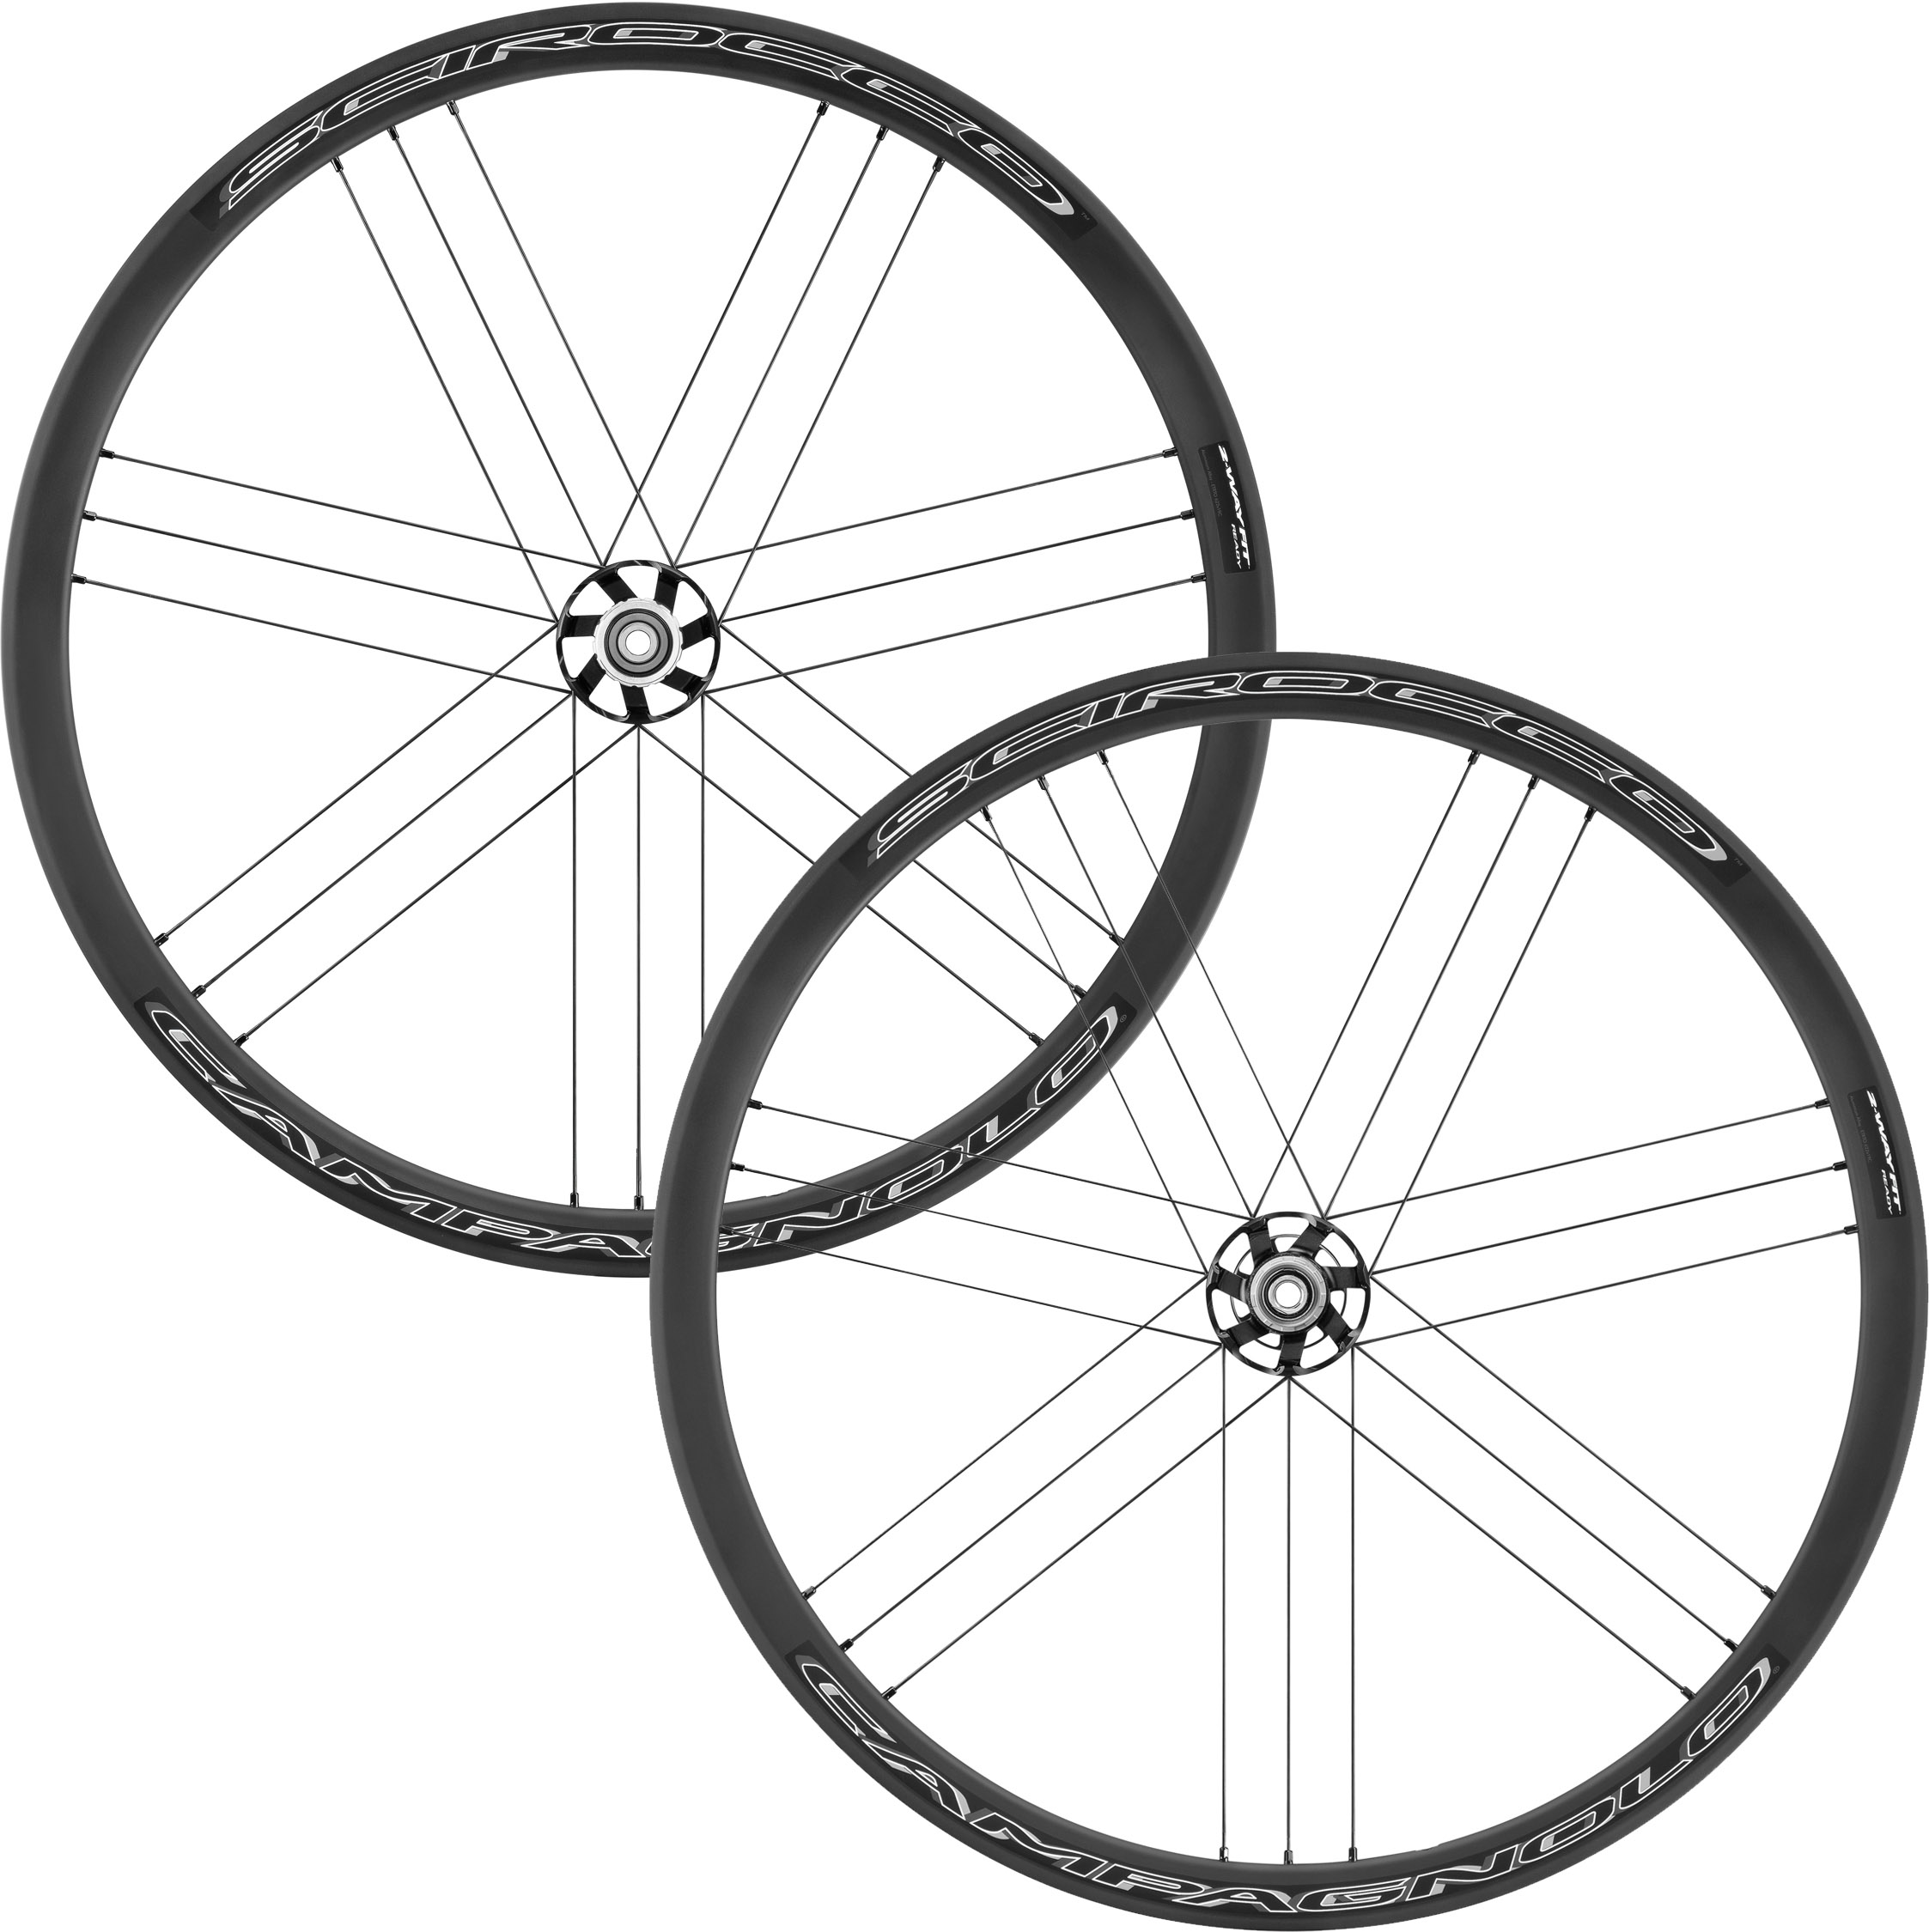 Campagnolo Scirocco DB BT12 Road Wheelset (2019) | Wheelset